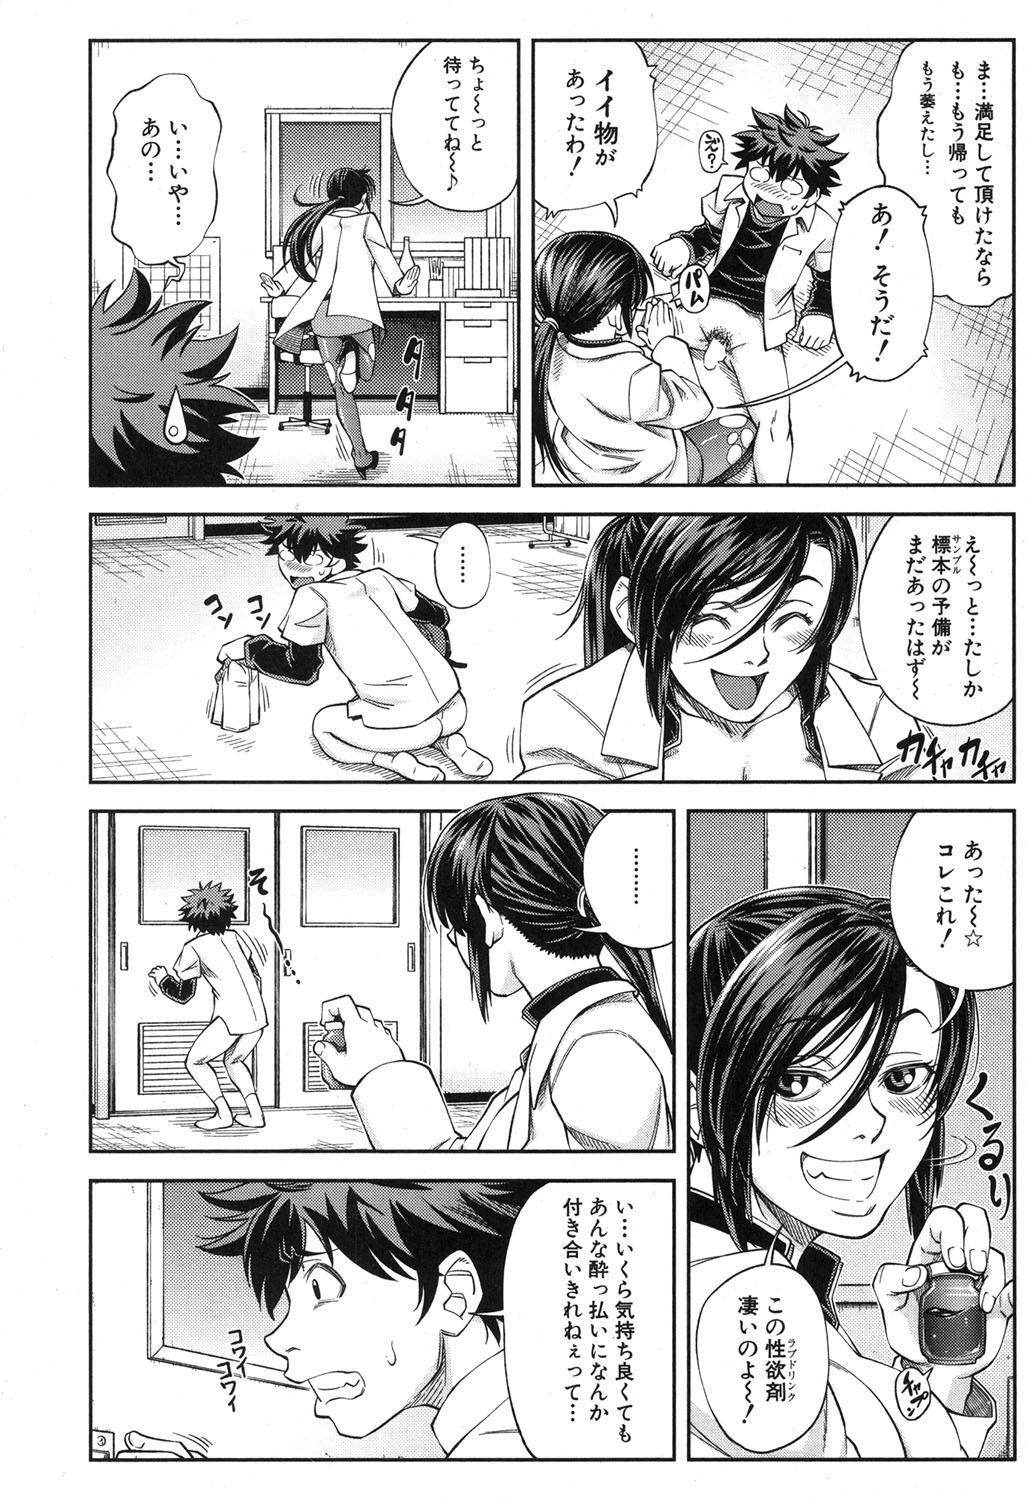 BUSTER COMIC 2015-11 10